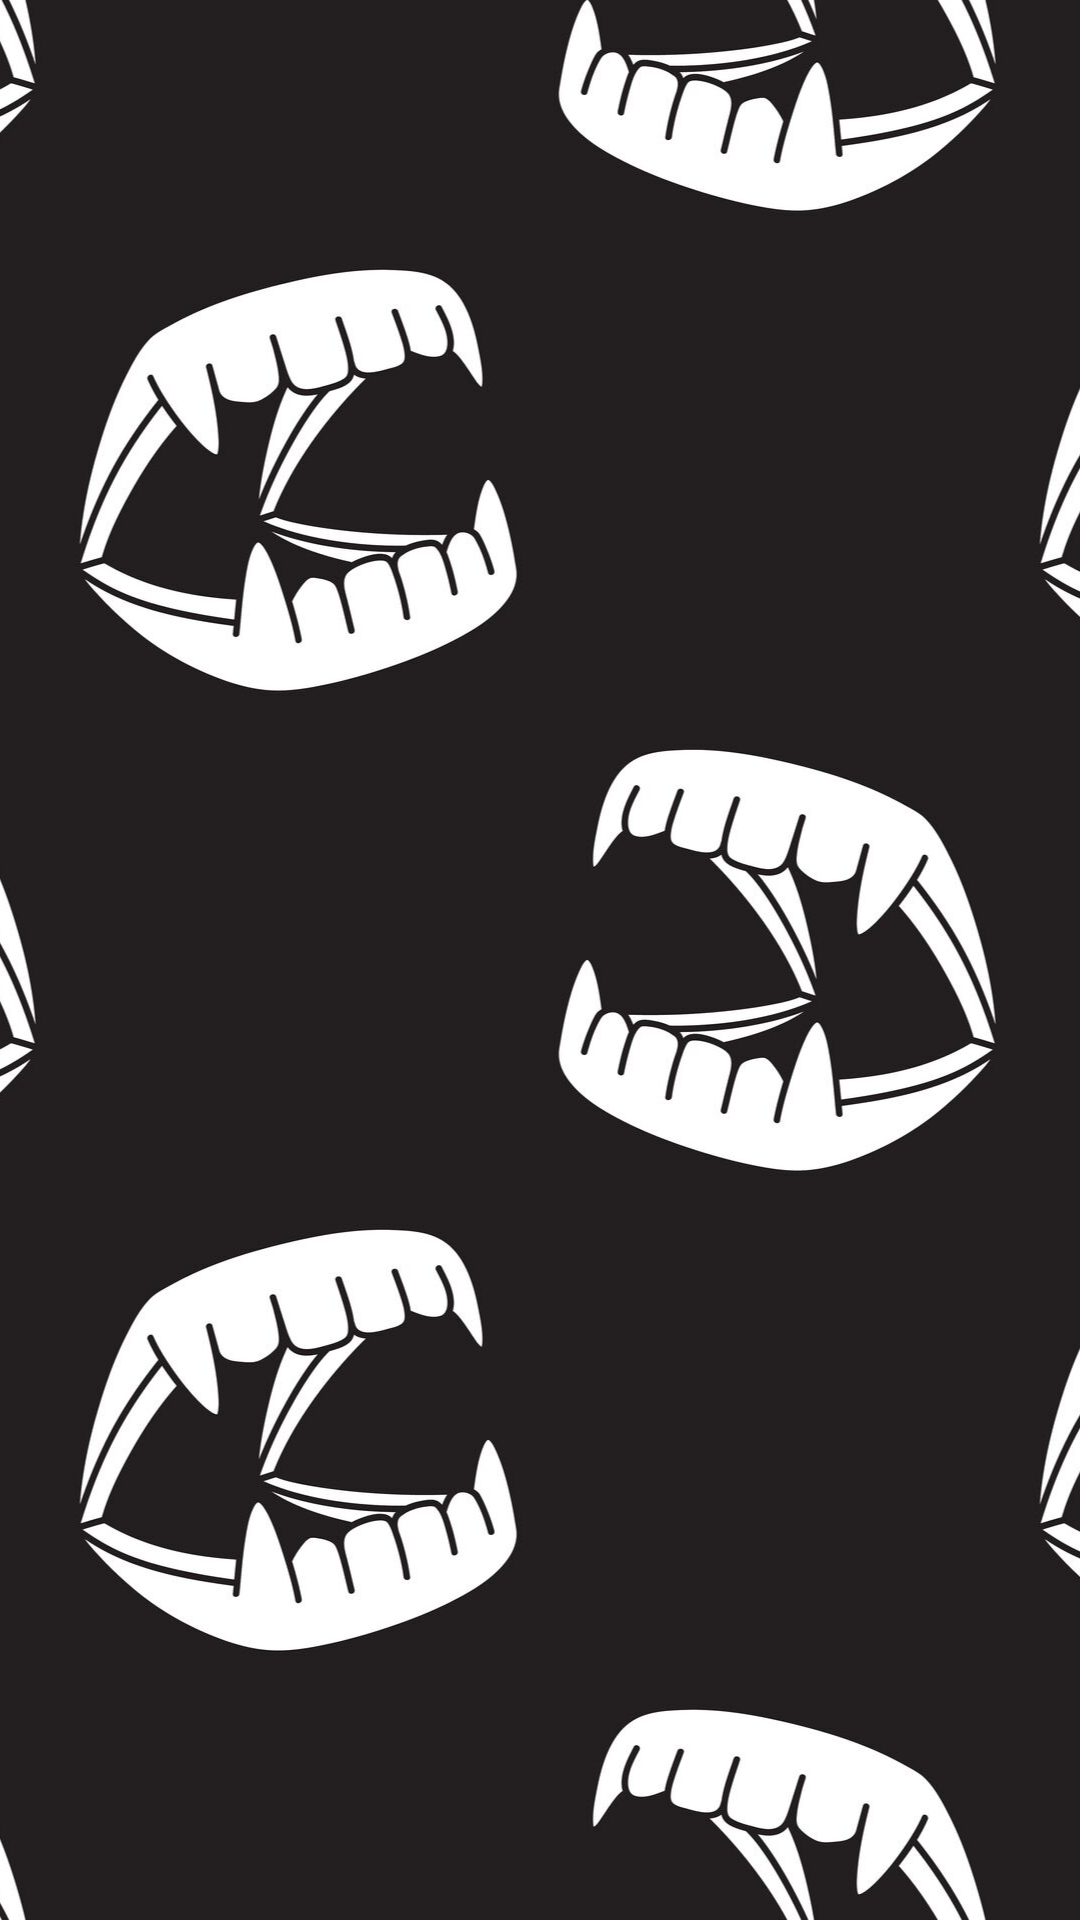 Halloween Ghost Dracula teeth evil Devil monster illustration seamless pattern icon wallpaper background - Vector